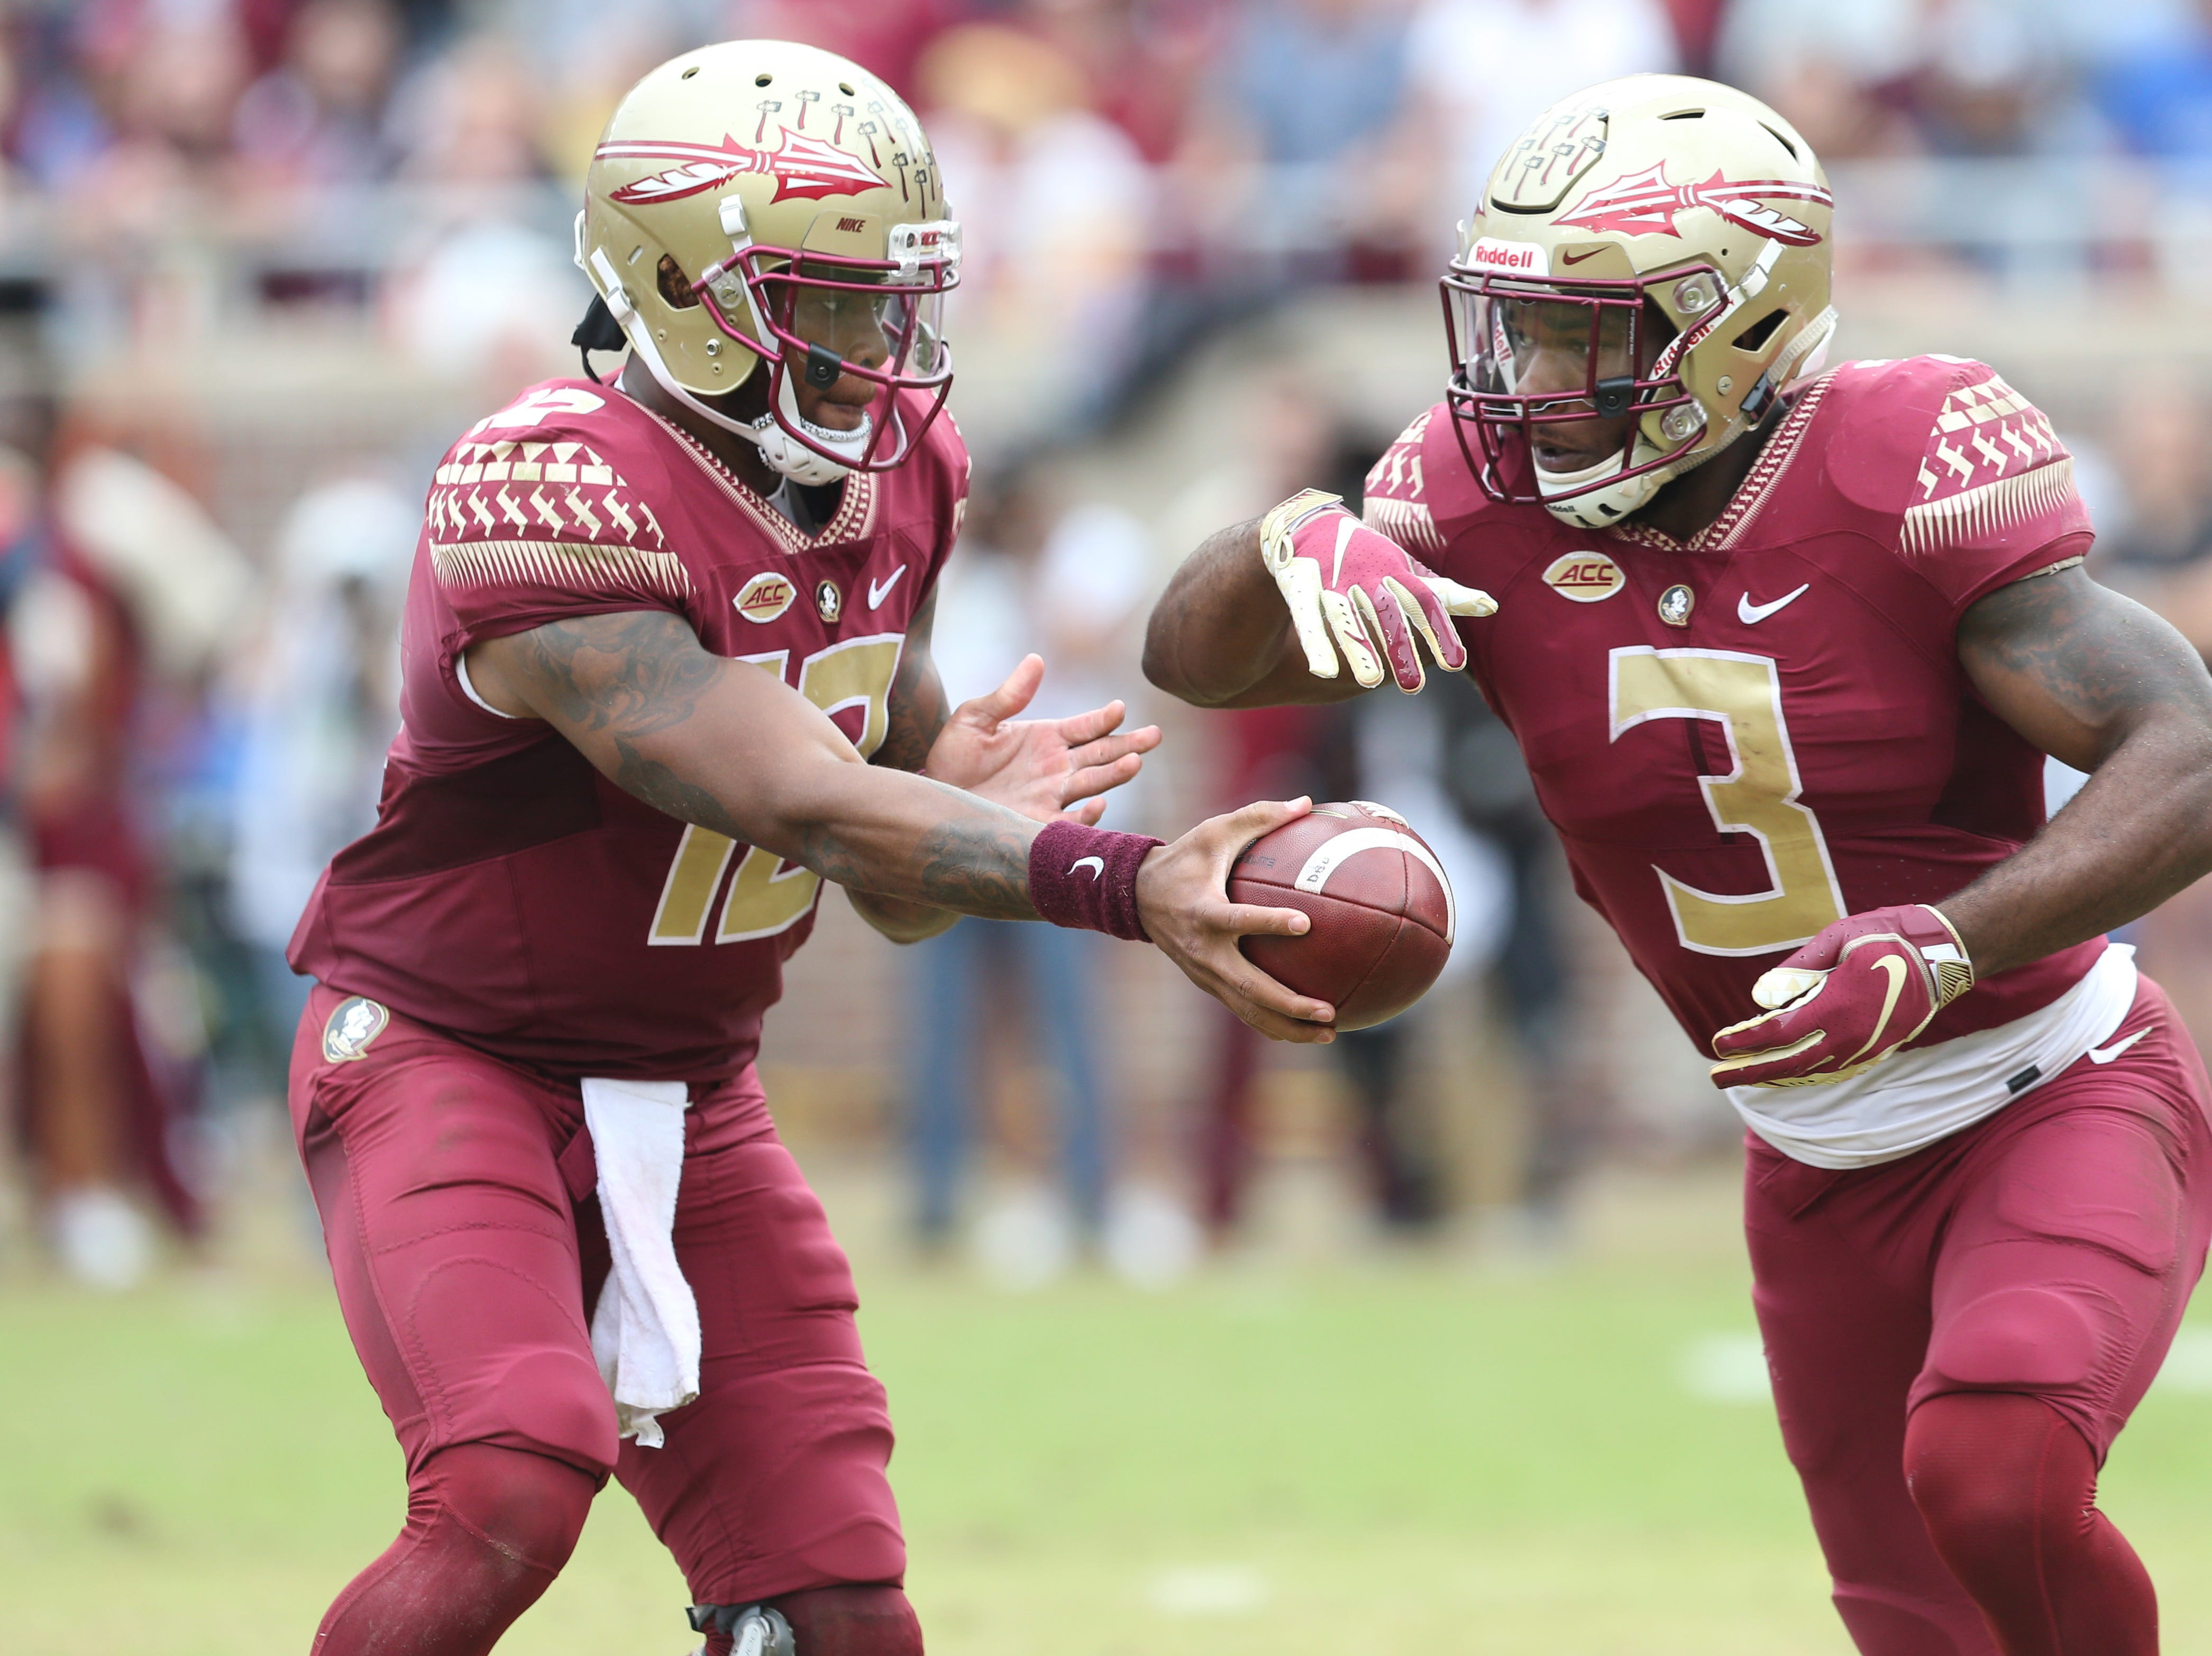 Florida State Seminoles quarterback Deondre Francois (12) hands off the ball to Florida State Seminoles running back Cam Akers (3) as the Florida State Seminoles take on their rival the Florida Gators in college football at Doak S. Campbell Stadium, Saturday, Nov. 24, 2018.